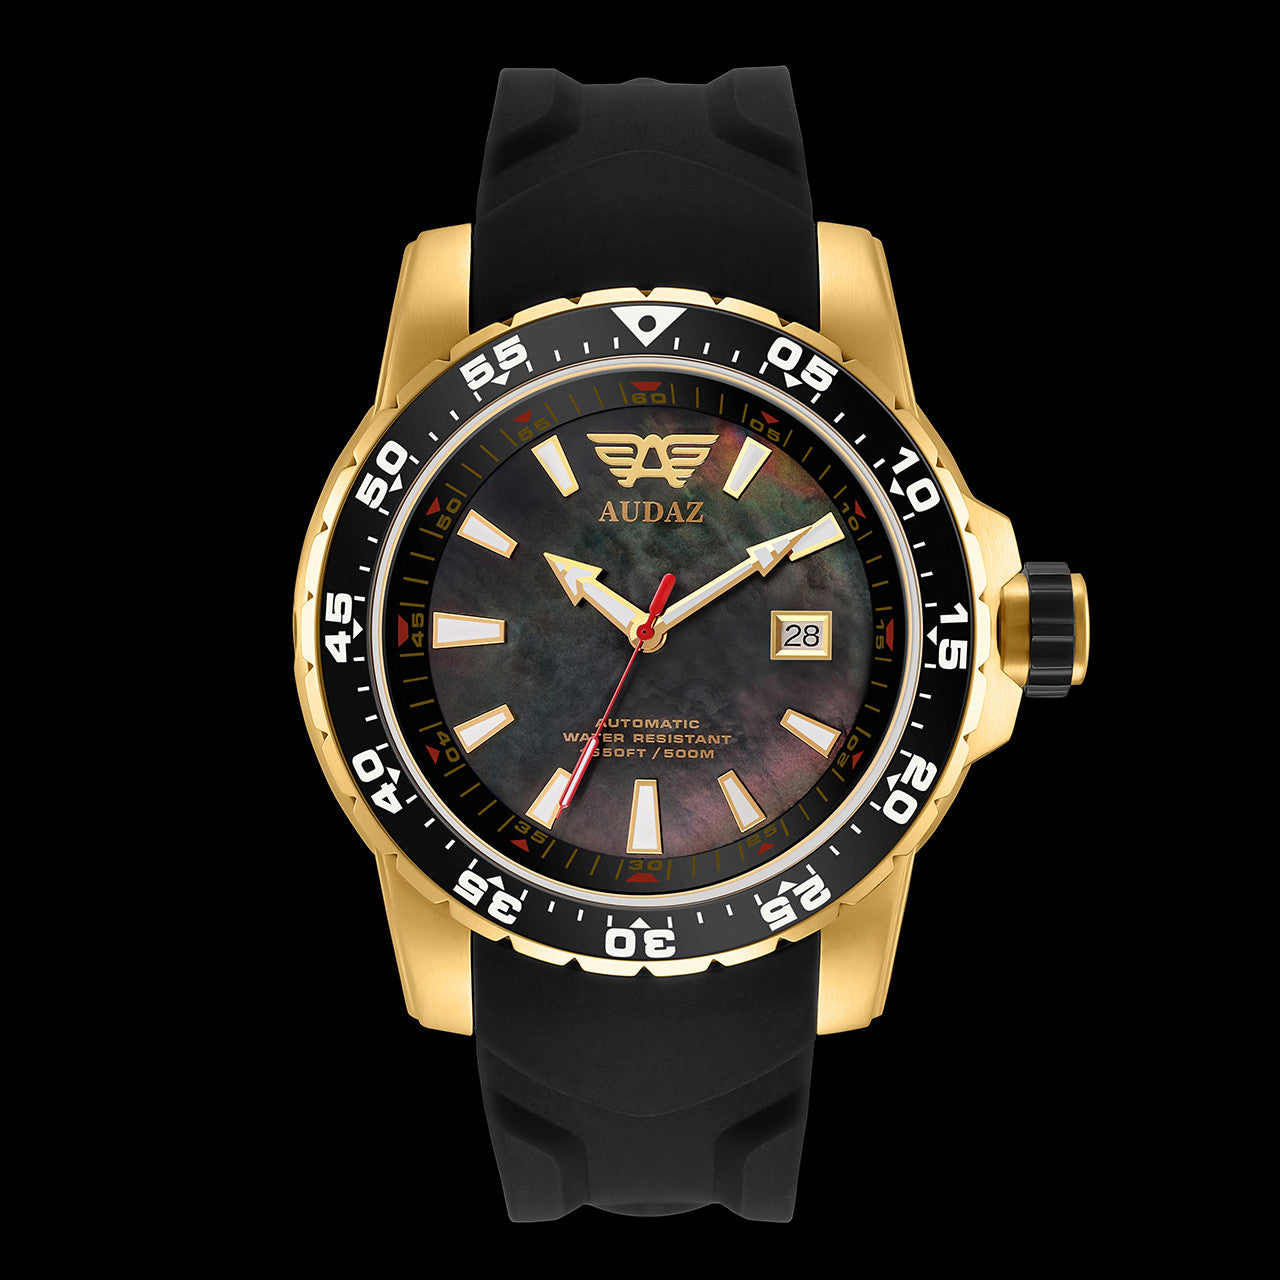 SCUBA MASTER Watches ADZ-2035-02